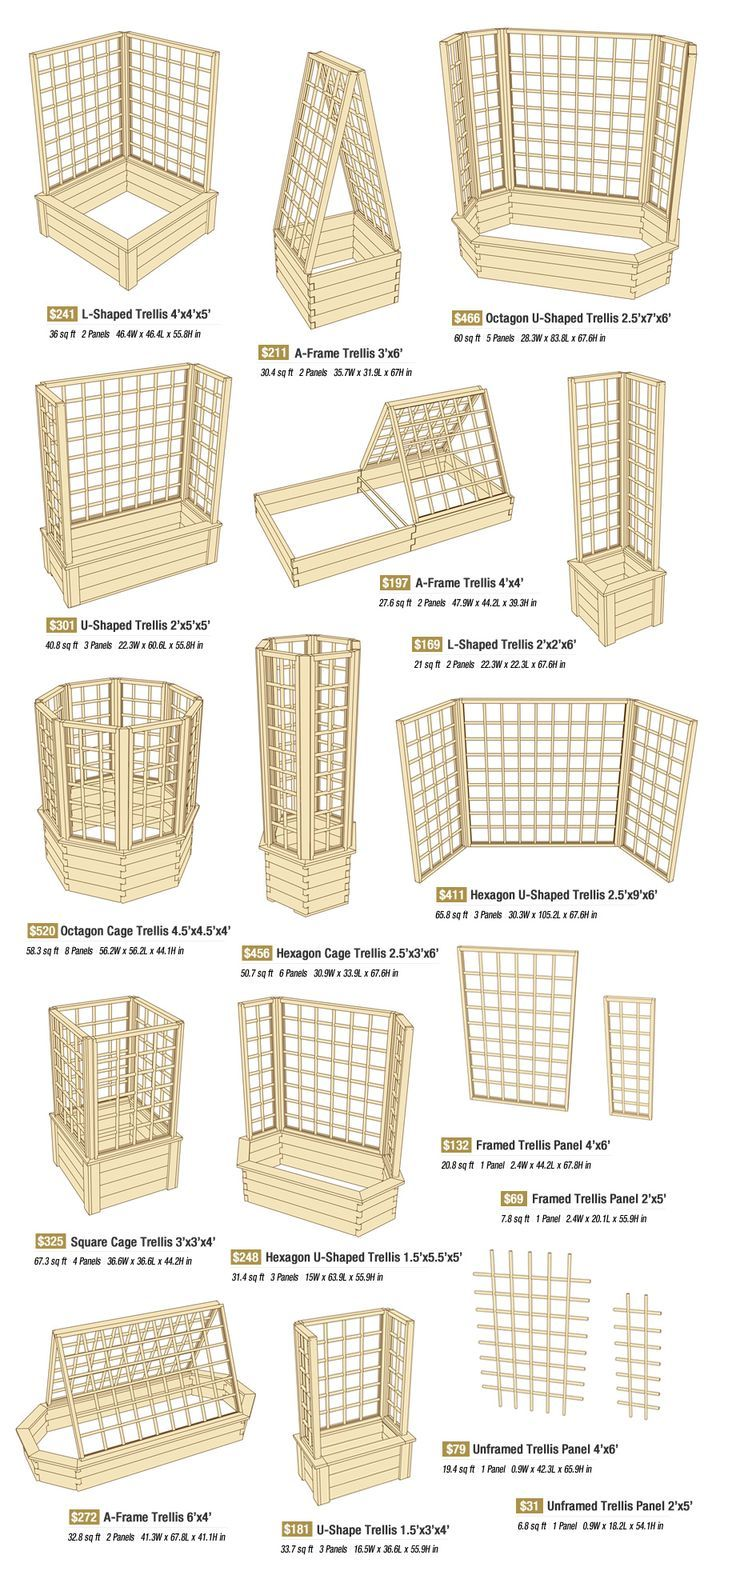 Ideas for a trellis just this image interesting info for Trellis design ideas